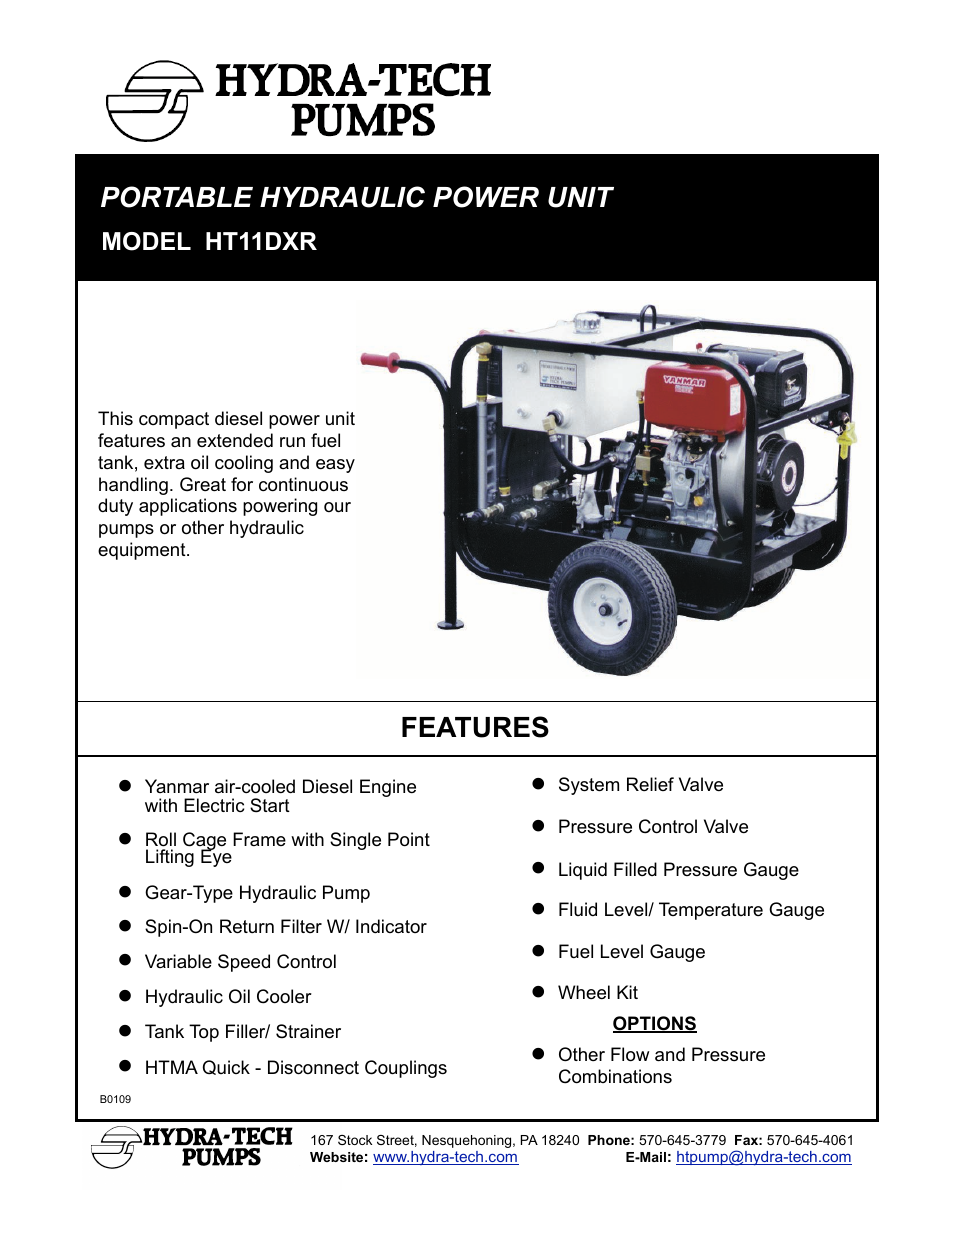 Hydra-Tech HT11DXR User Manual | 2 pages